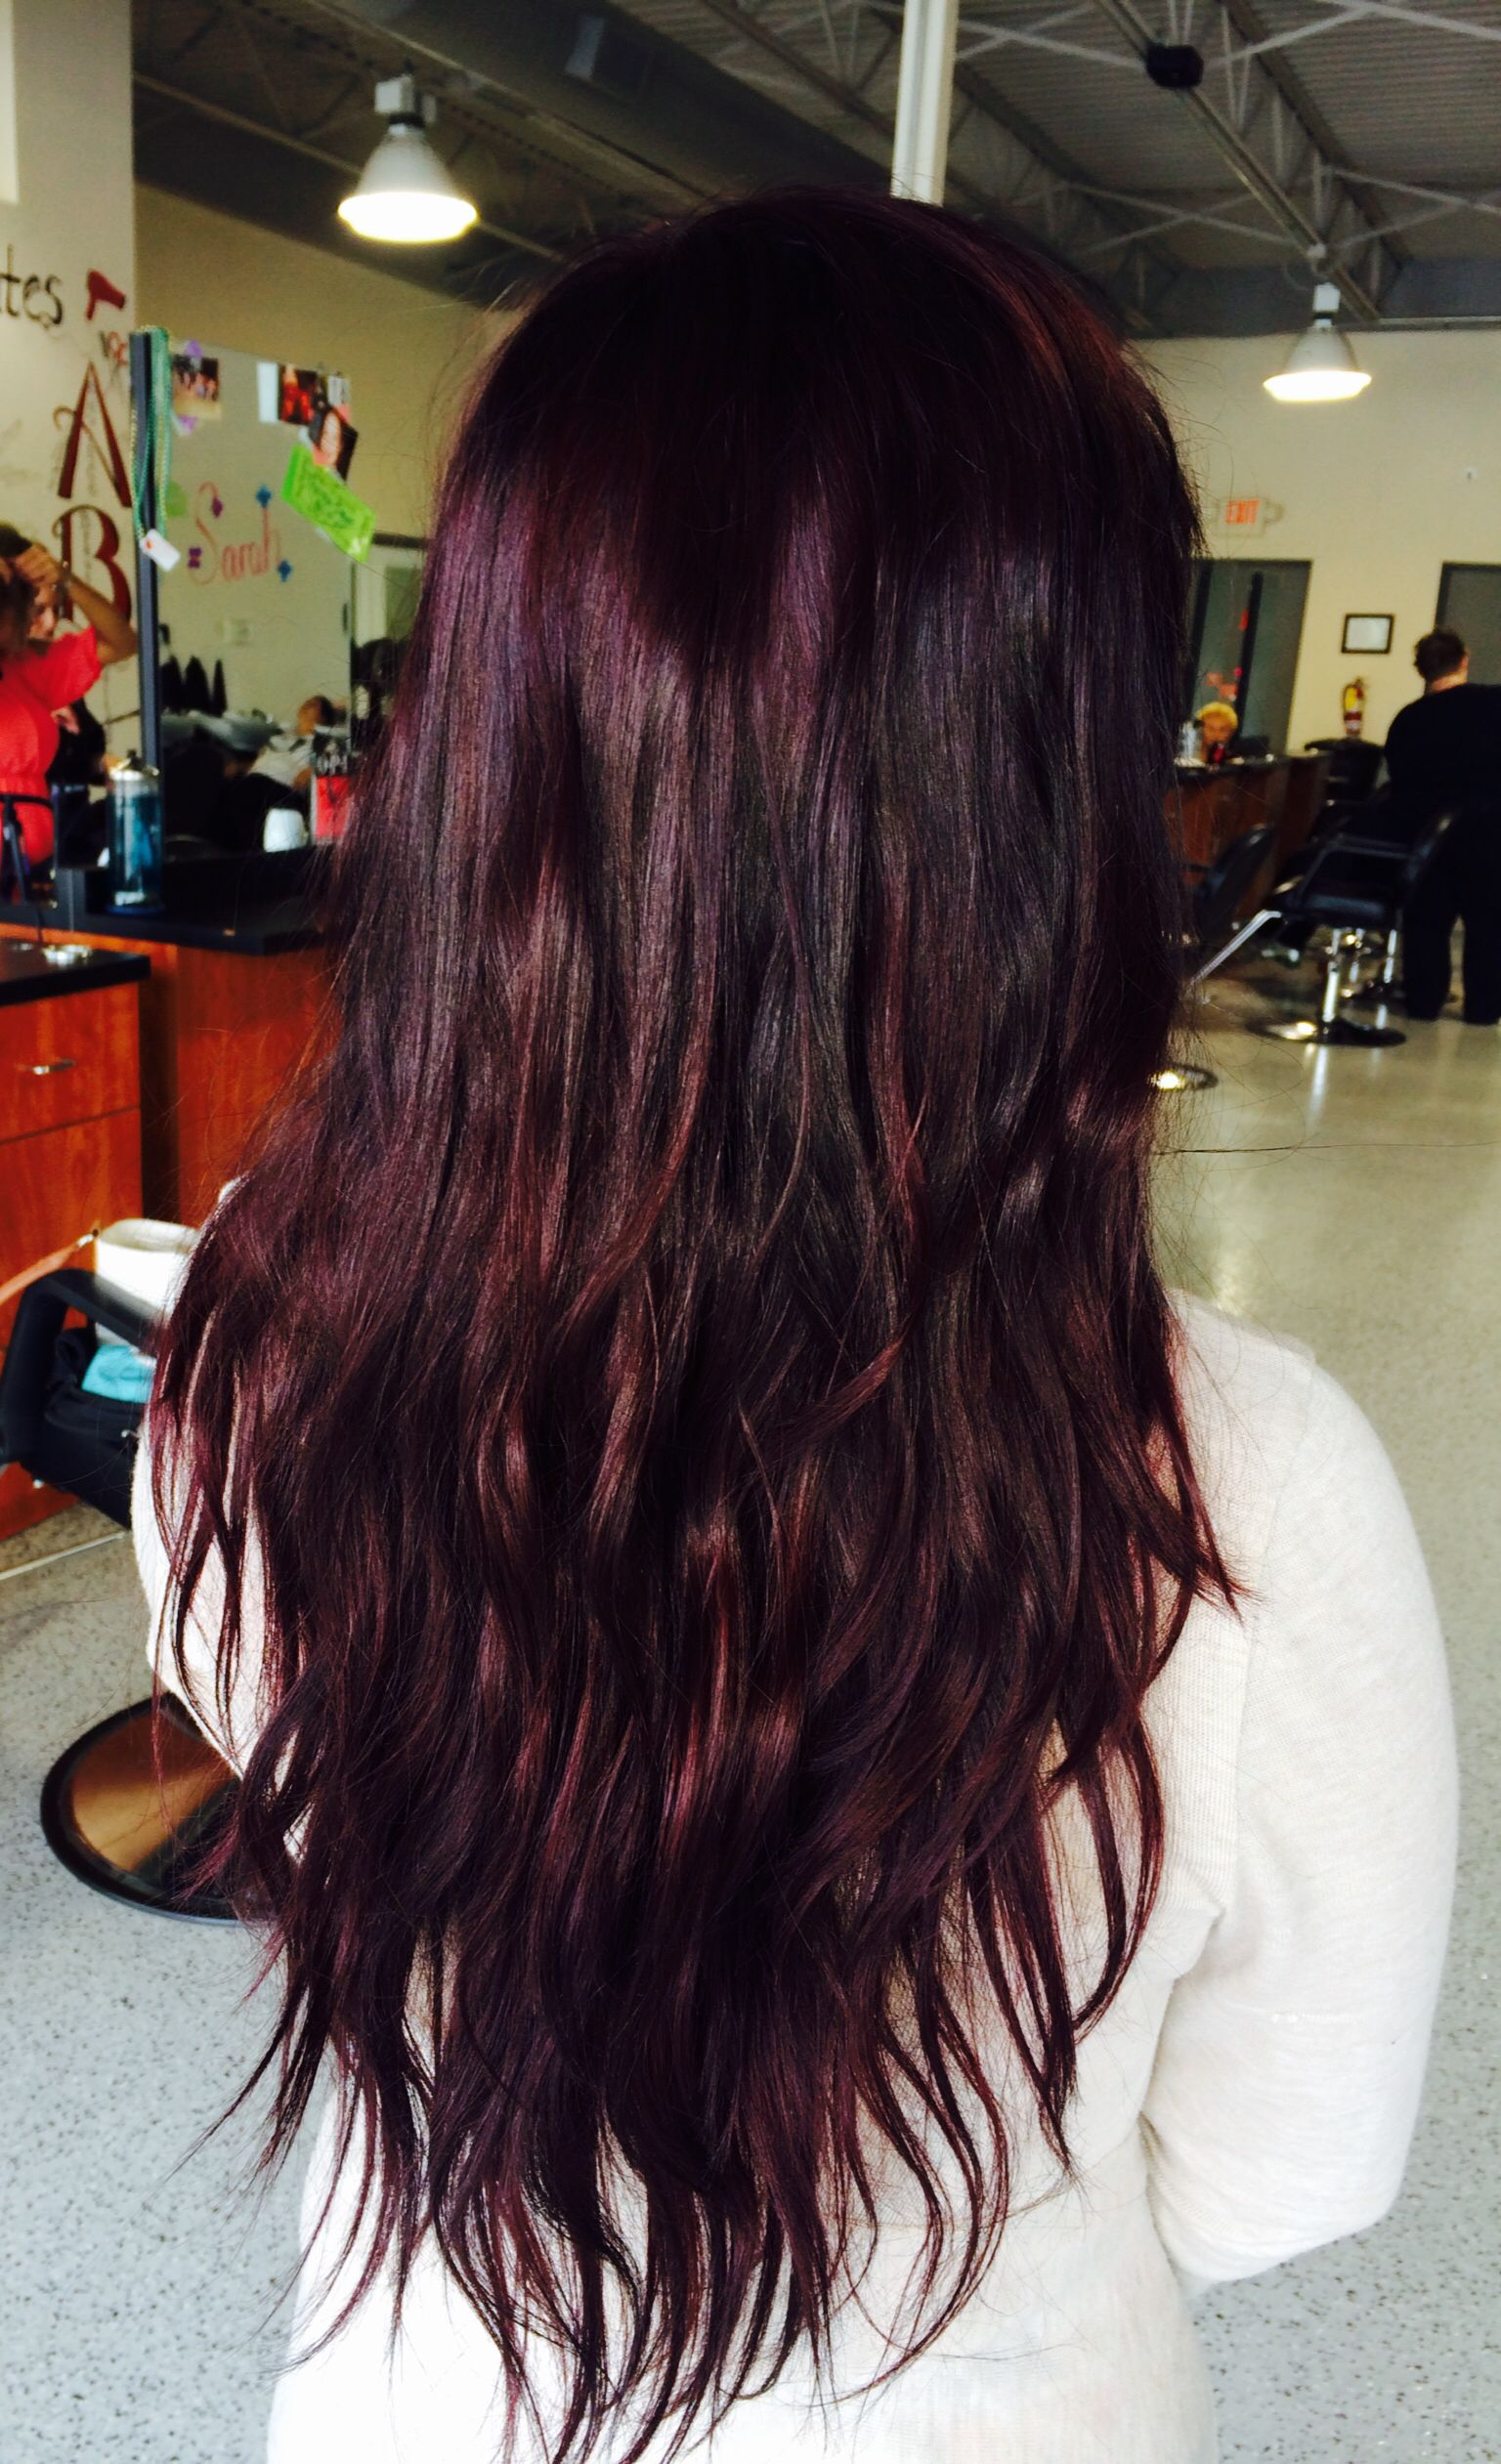 Beautiful Black Cherry Red Violetpurple Hair Color T A N G L E D